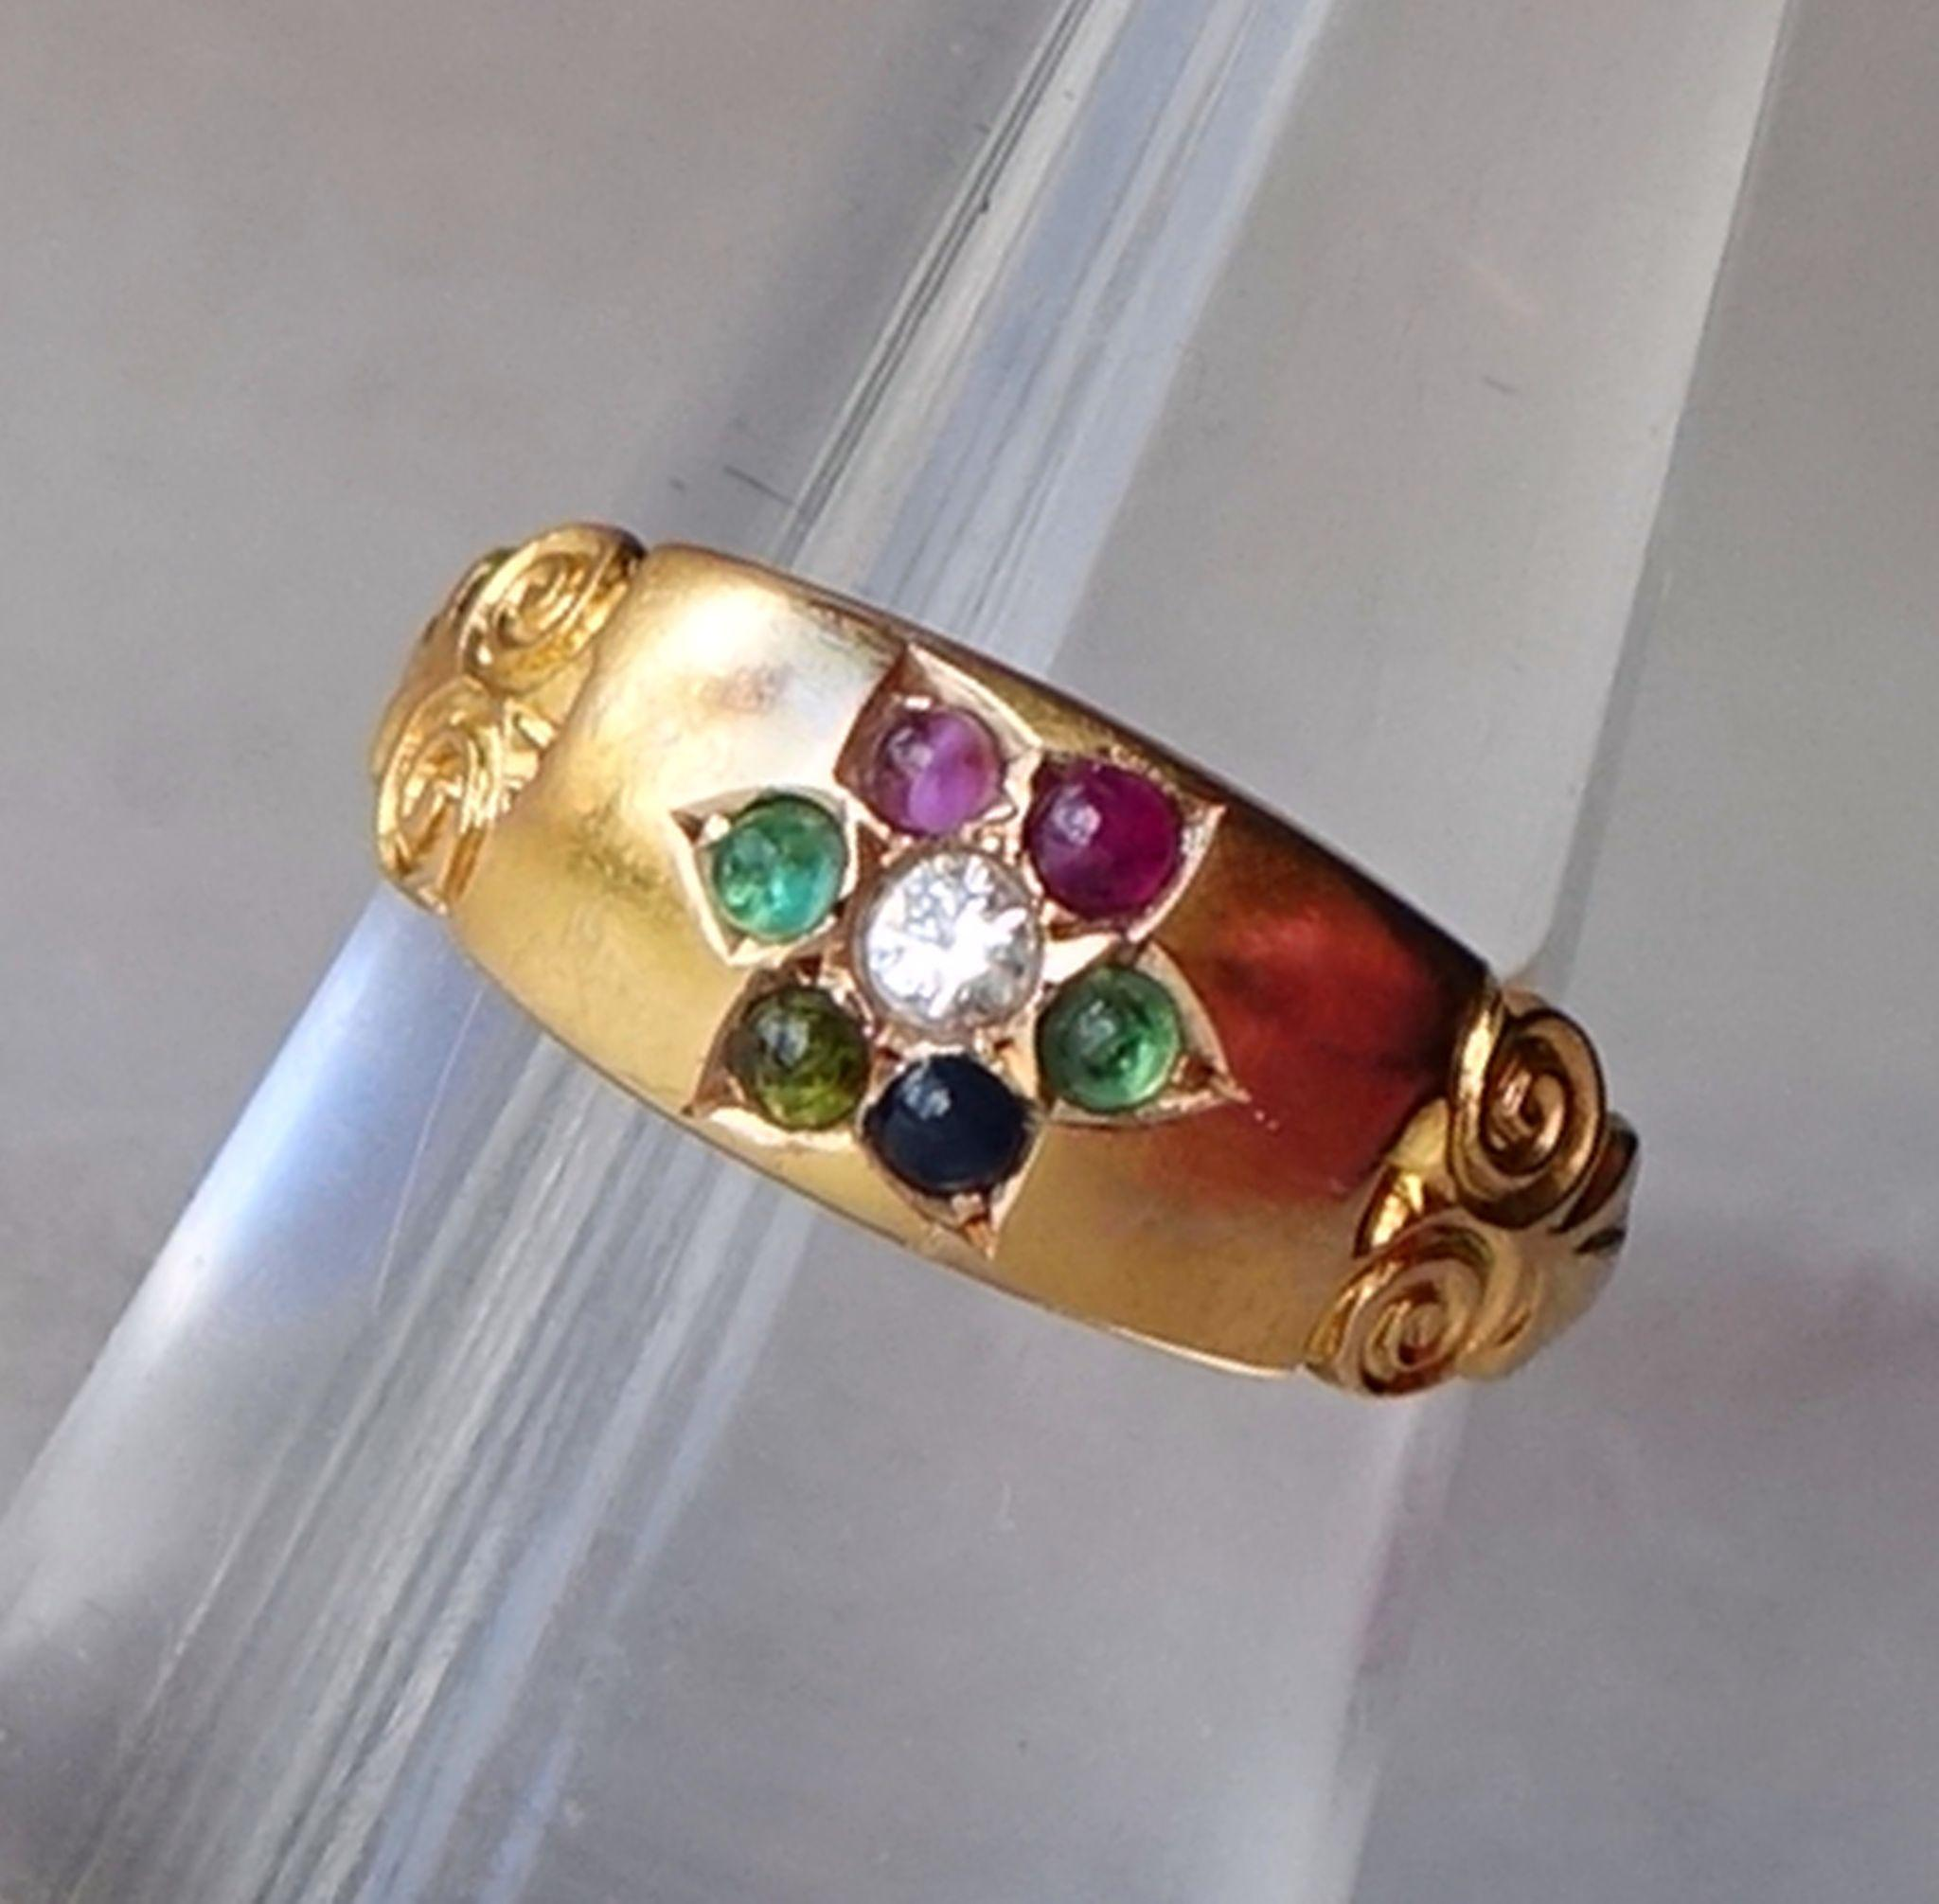 antique 1896 dearest ring 15ct gold chester hallmark from